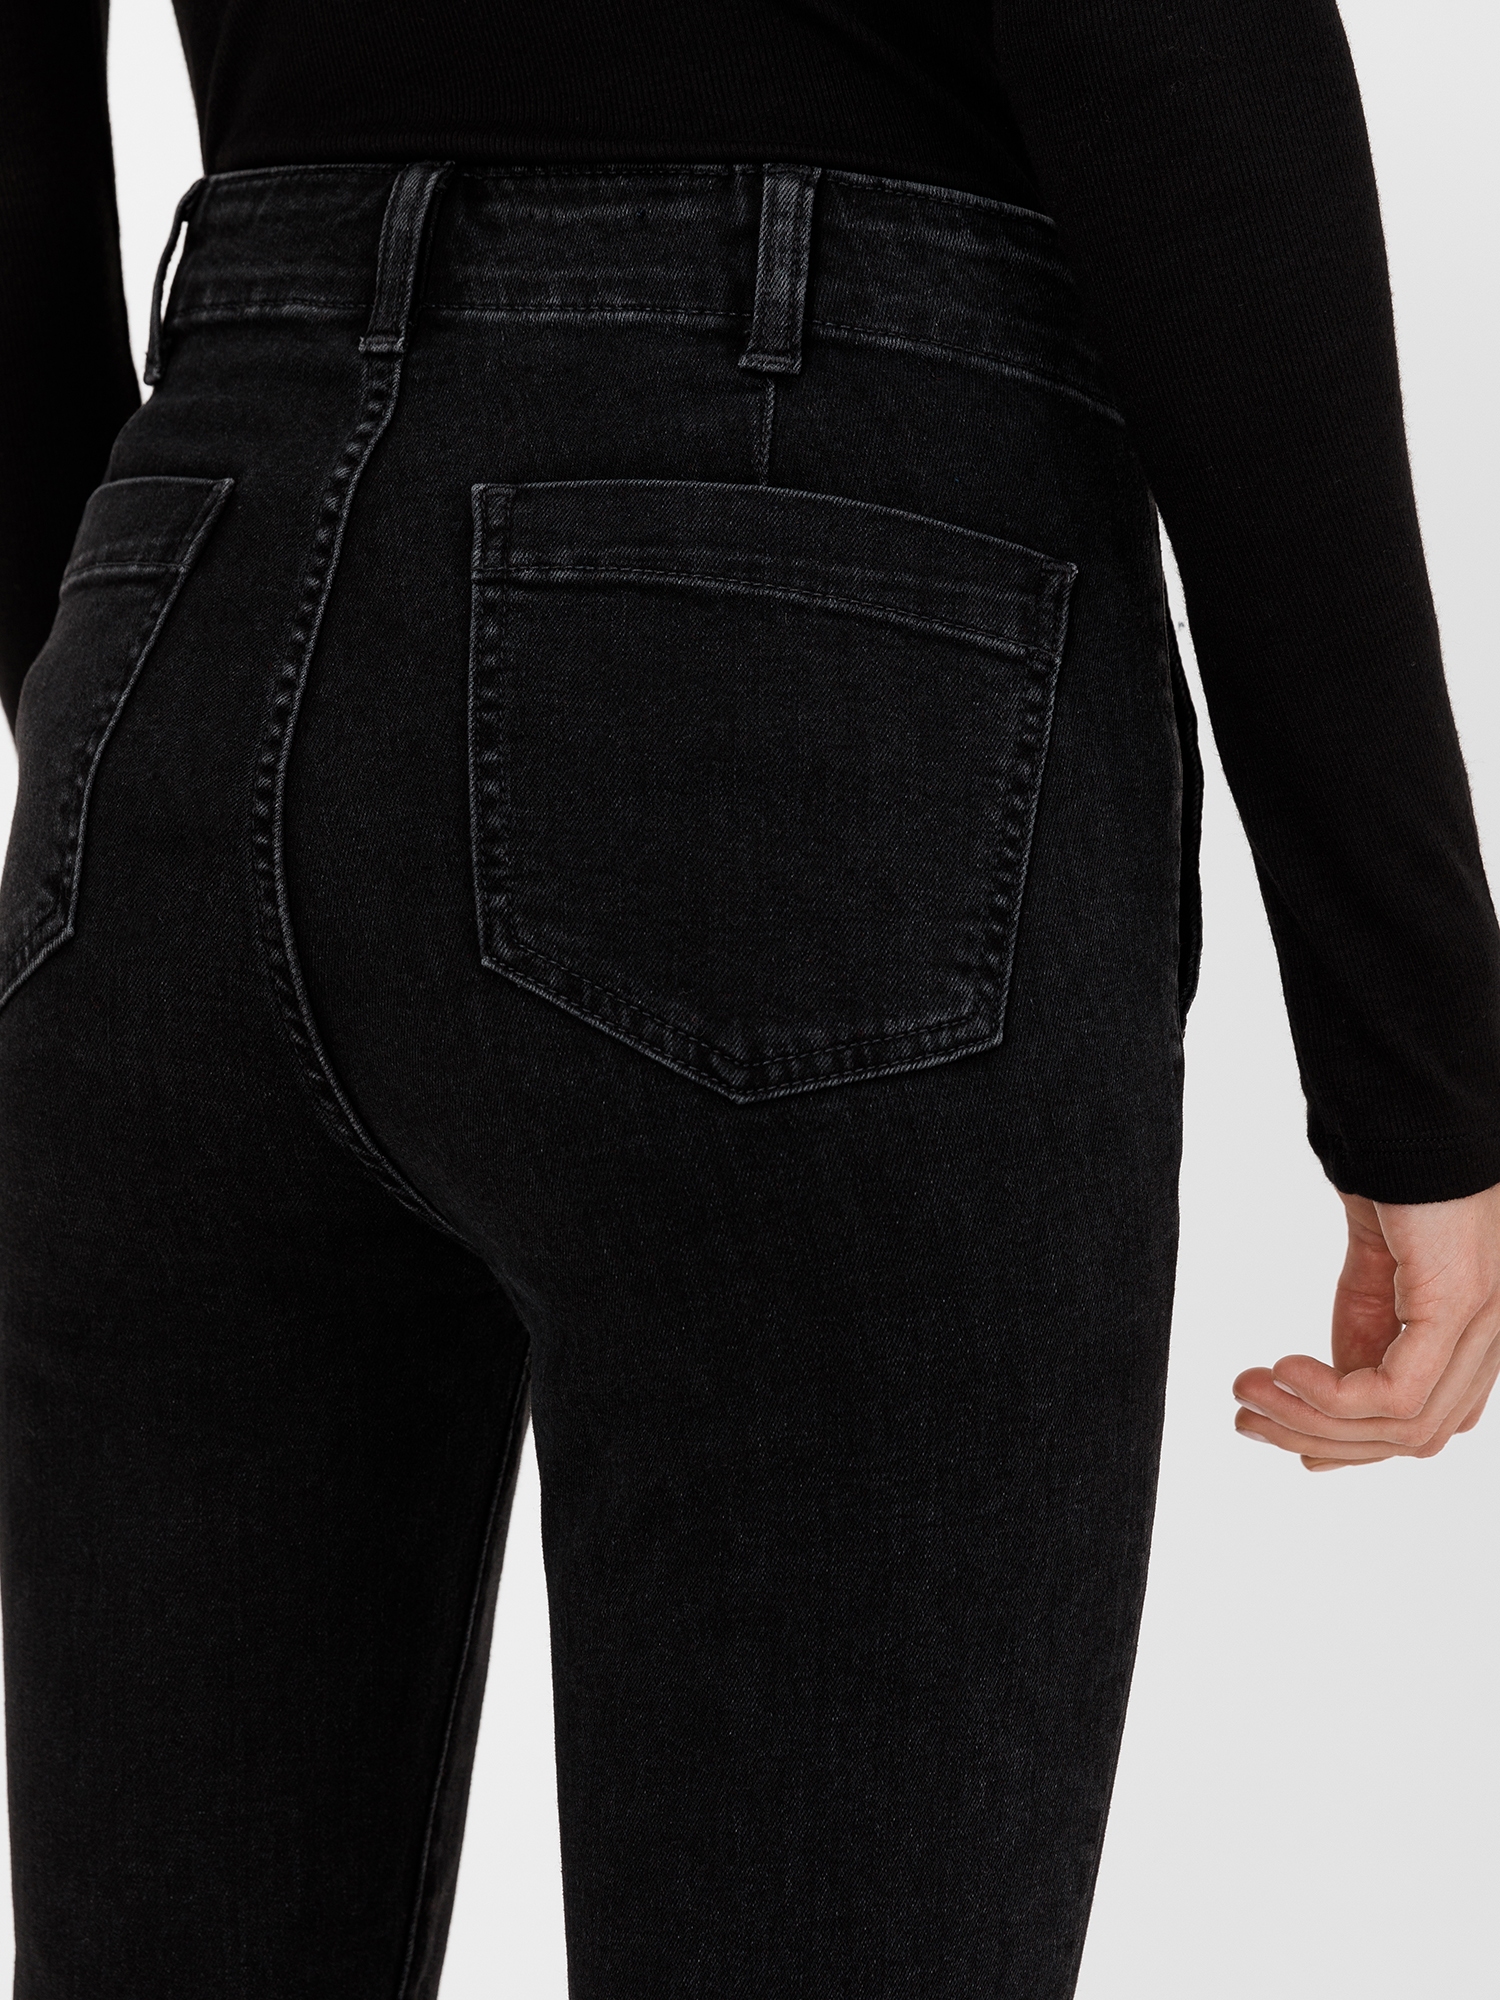 Džínsy high rise true skinny with secret smoothing pockets (5)